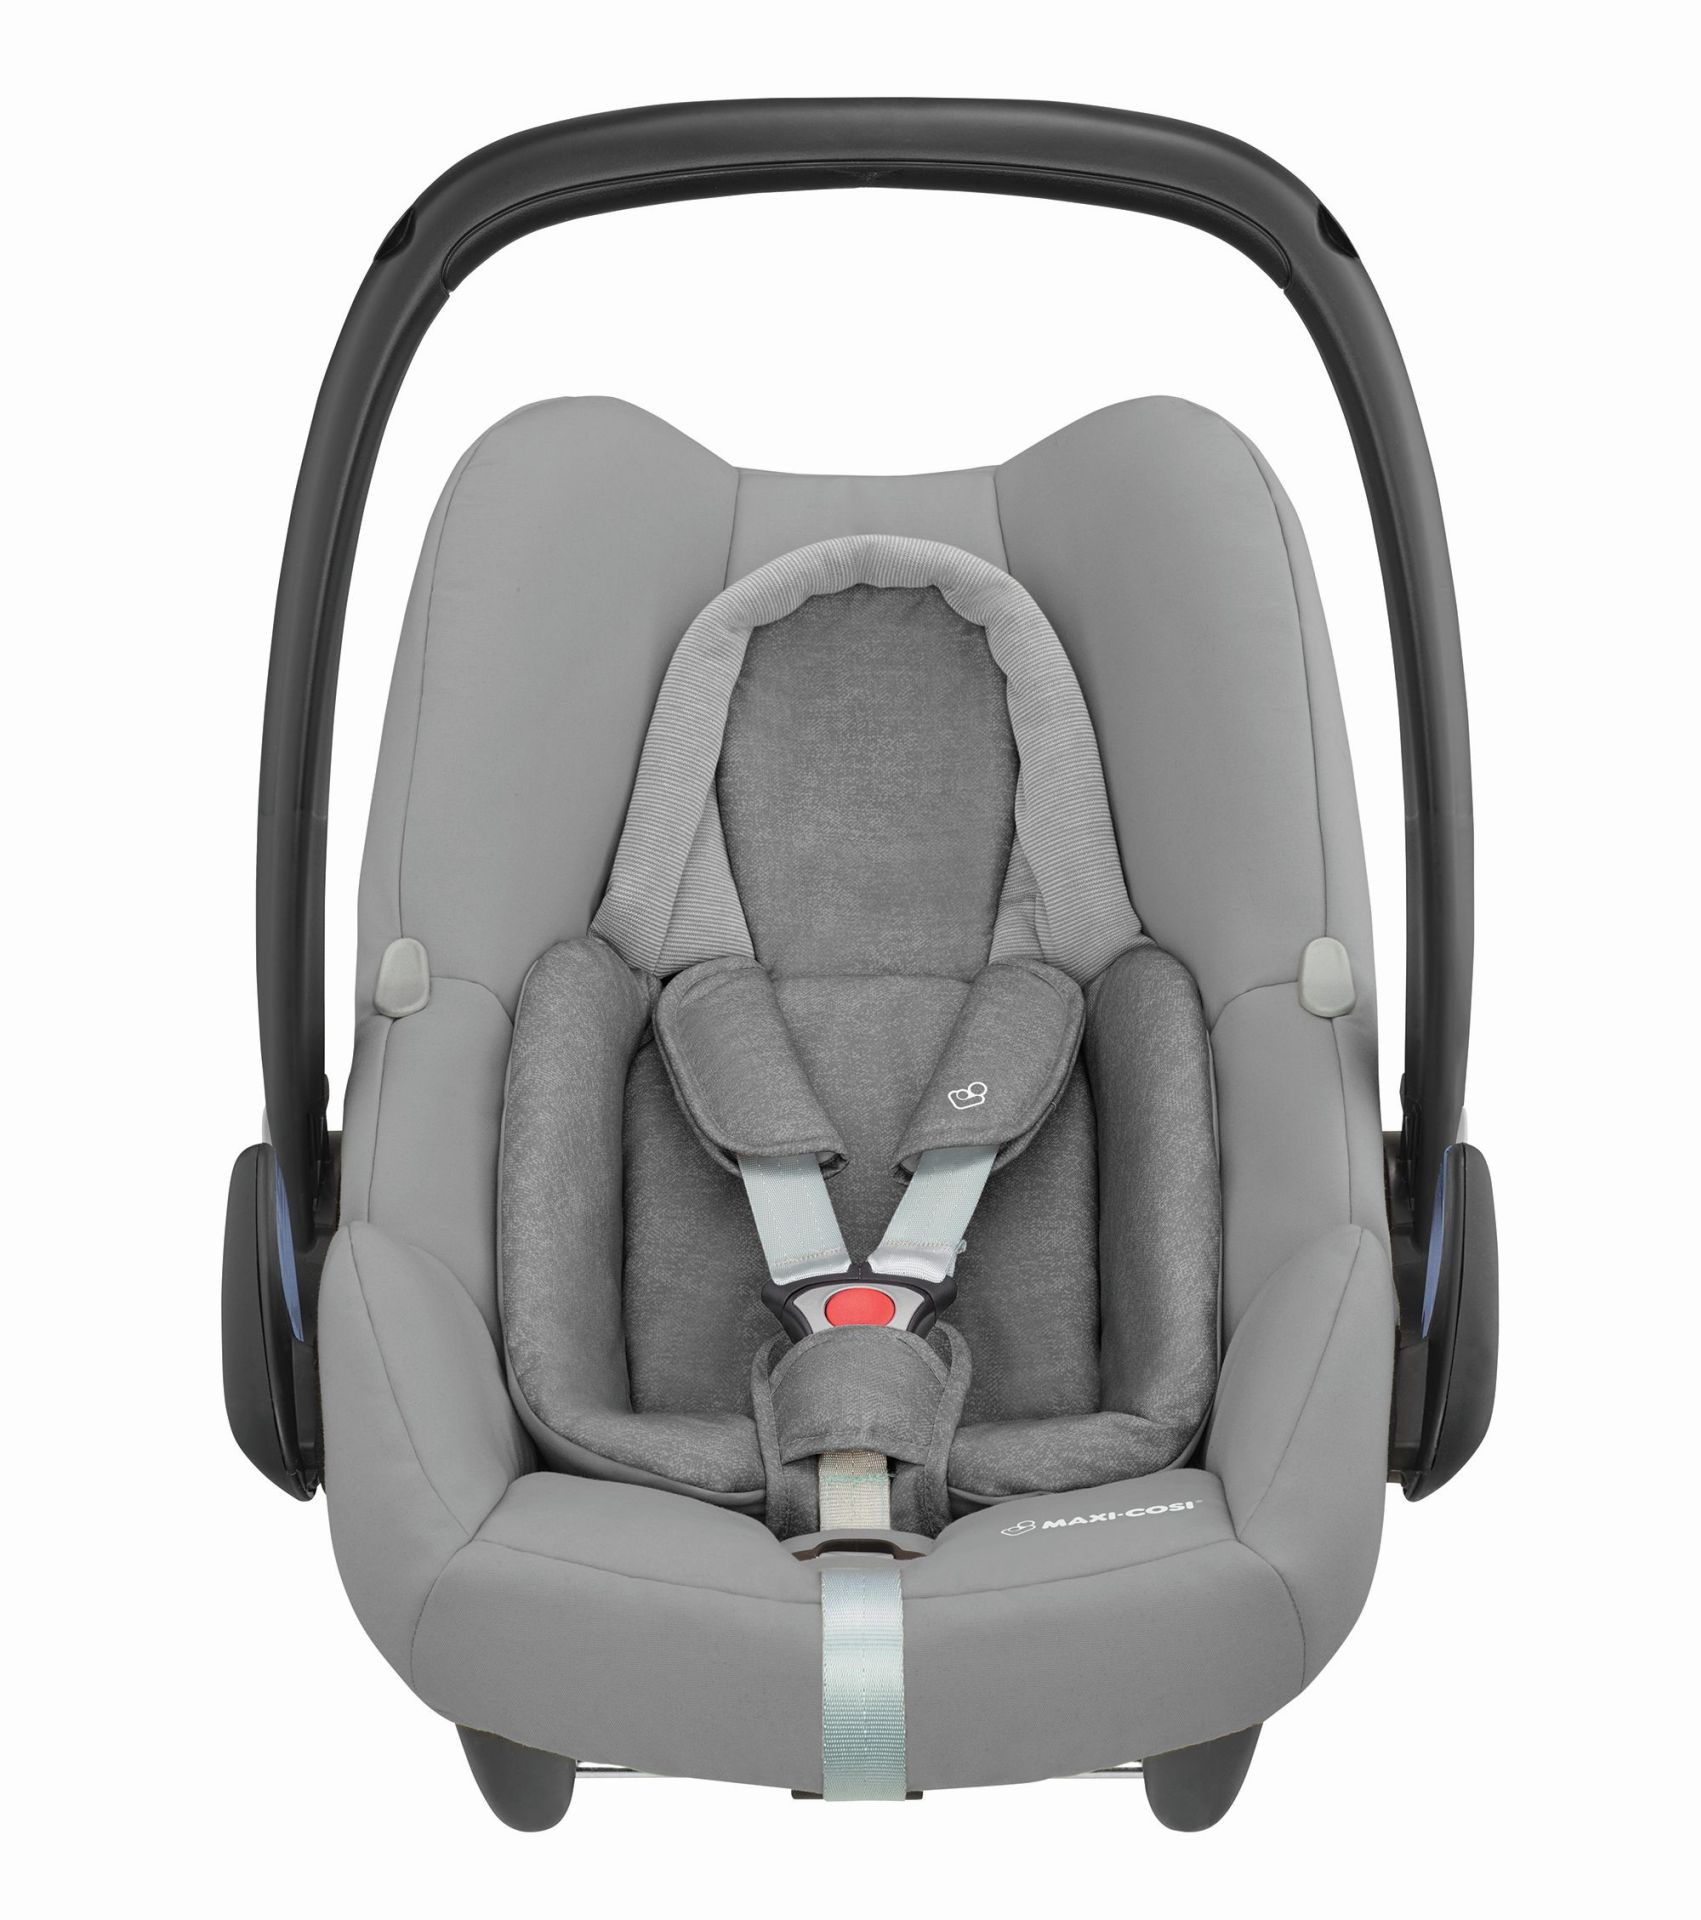 maxi cosi familyfix one i size security concept 2018 nomad grey buy at kidsroom car seats. Black Bedroom Furniture Sets. Home Design Ideas